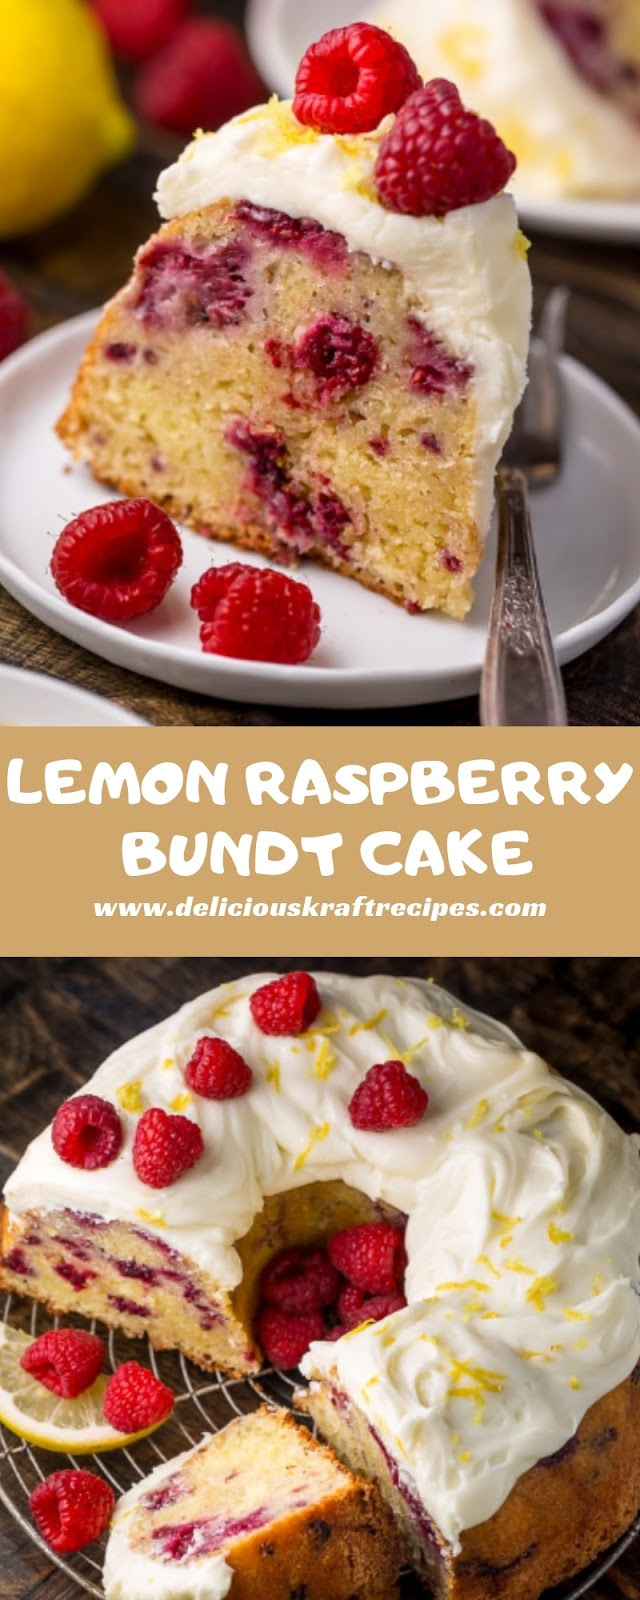 LEMON RASPBERRY BUNDT CAKE